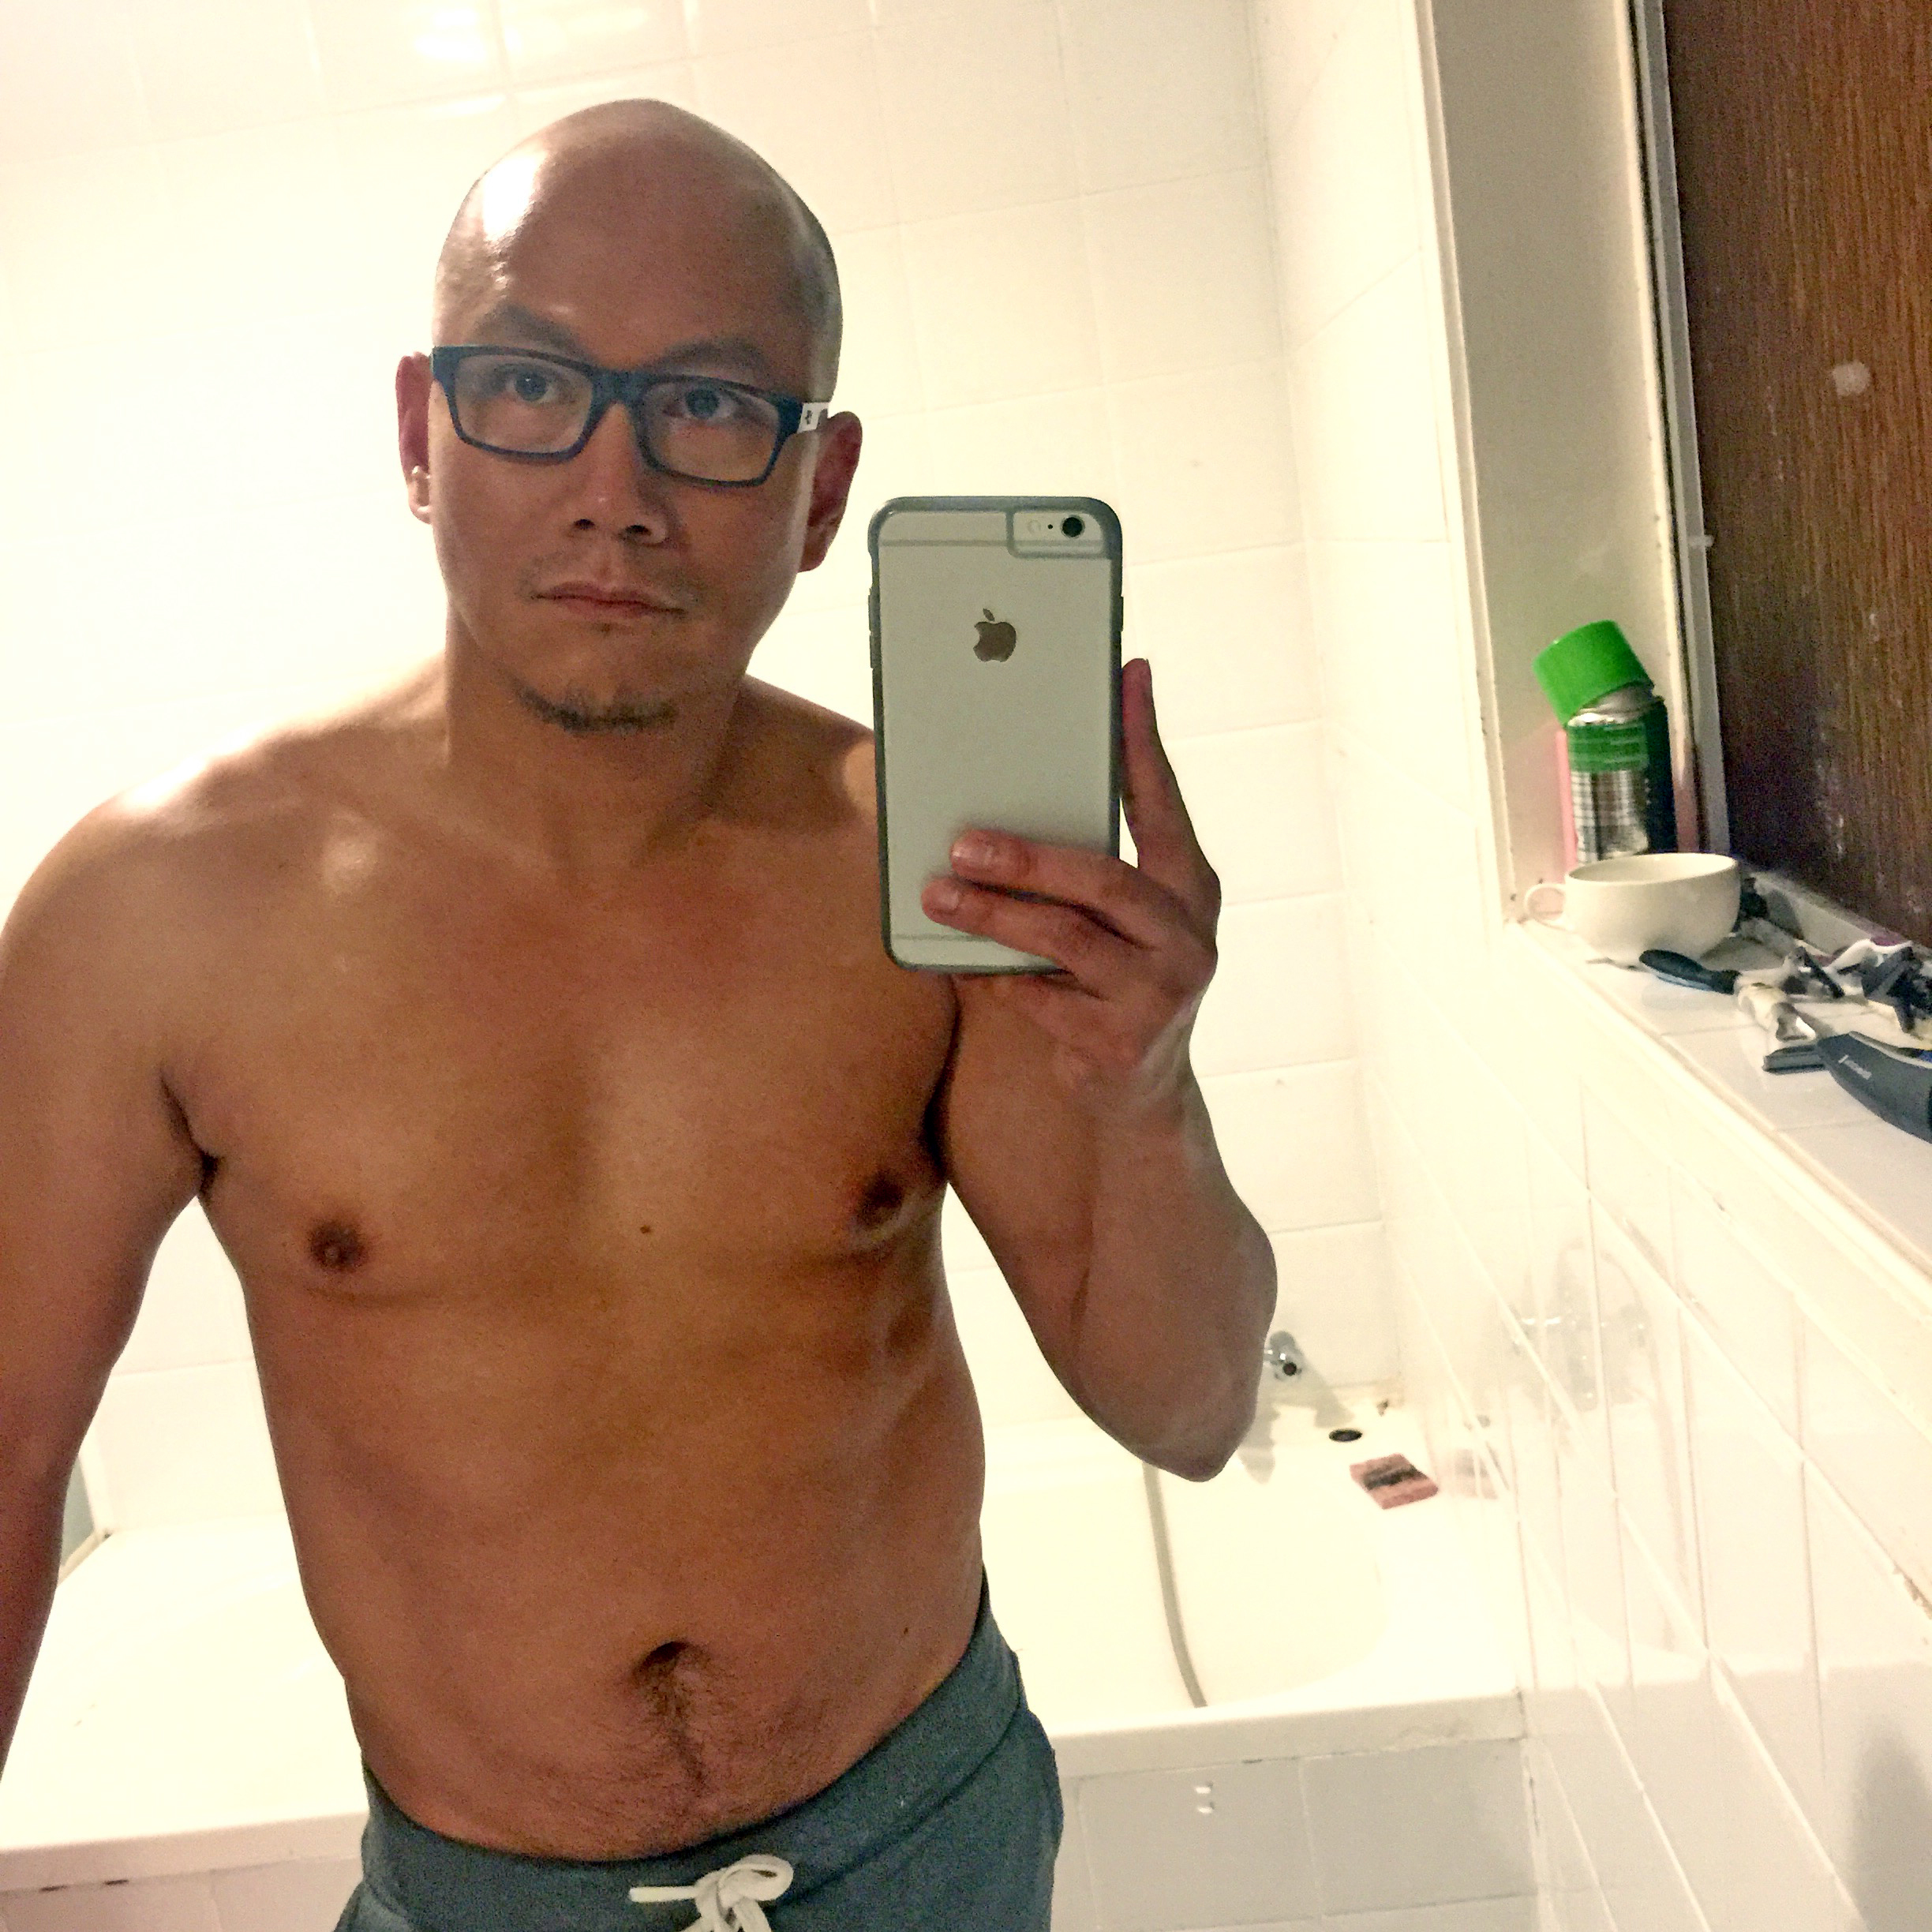 Shirtless selfie because I need to know if I'm getting fat or something. Sometimes you can't rely on a mirror. This is the old bathroom in Papakura.